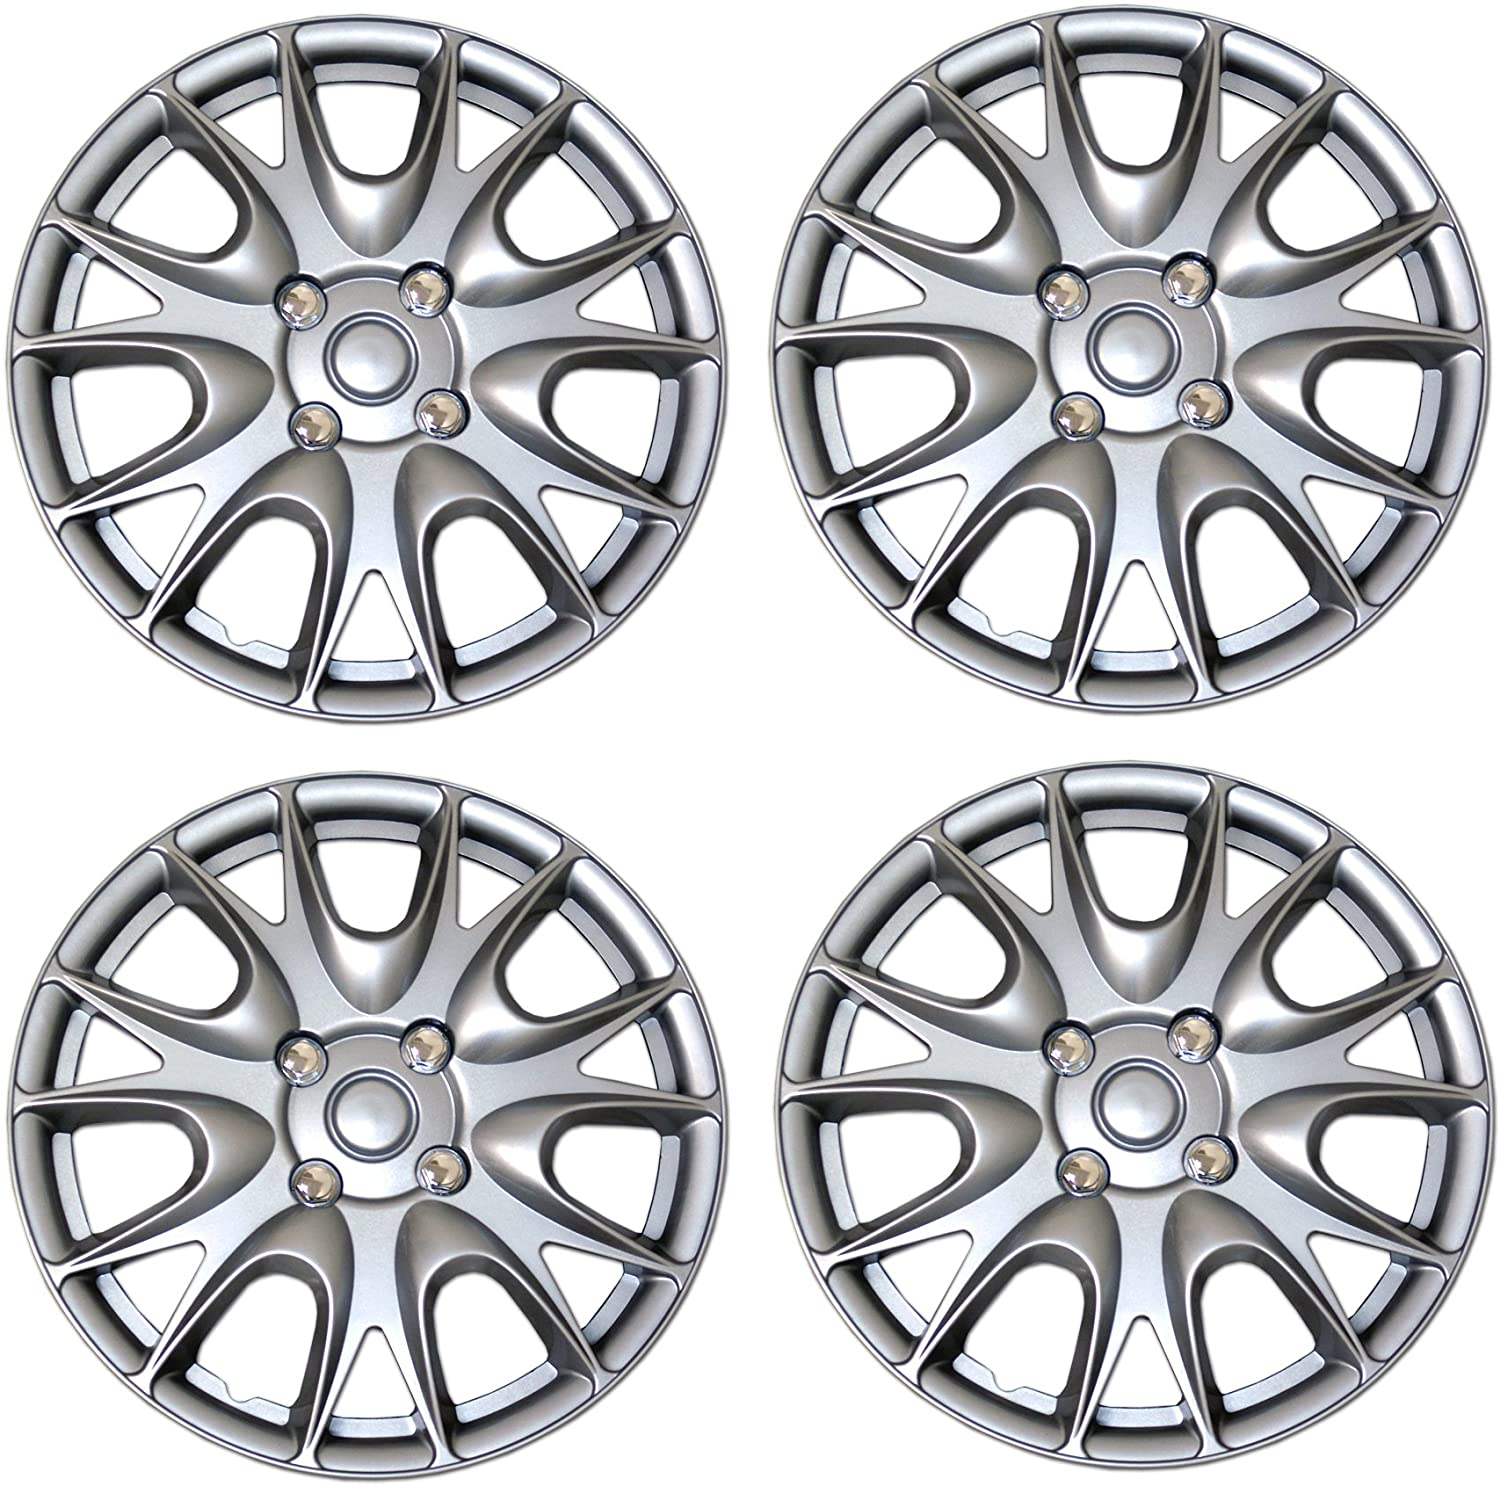 15-Inches Style 611 Snap-On Type Metallic Silver Wheel Covers Hub-caps Pack of 4 Hubcaps Pop-On Tuningpros WC3-15-611-S